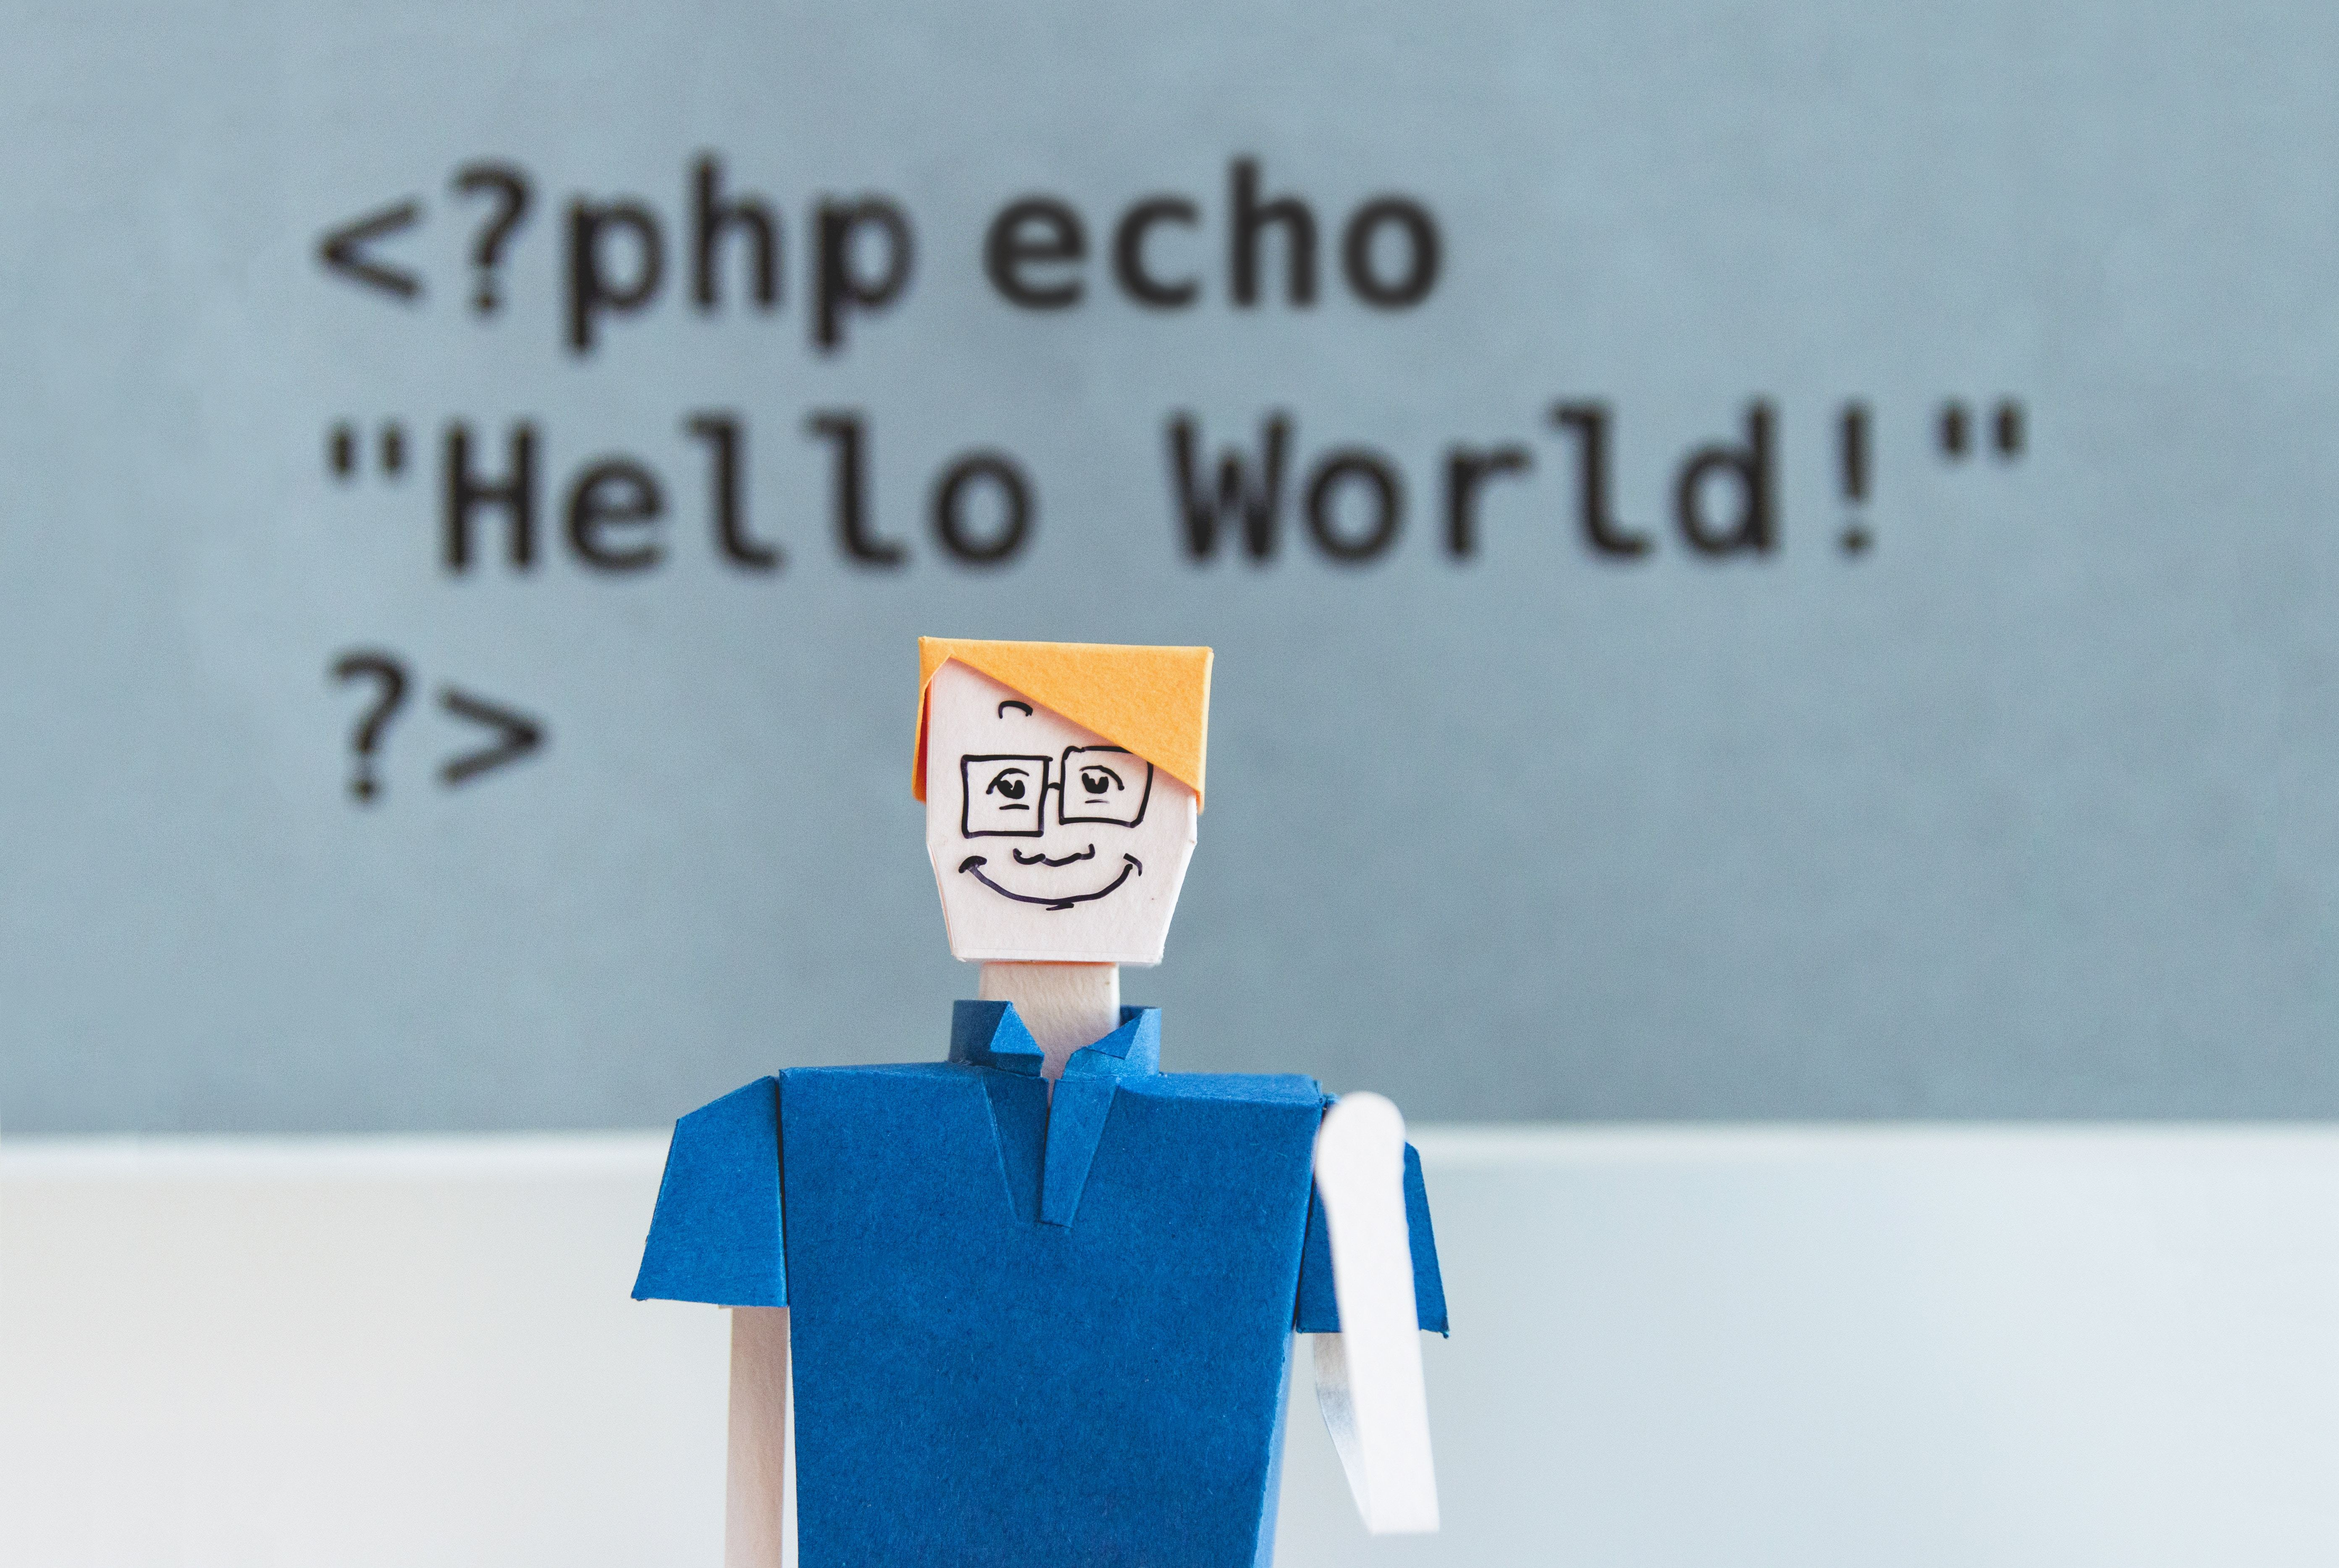 Paper cut our image of a man in a blue shirt smiling with caption 'Hello World' behind him